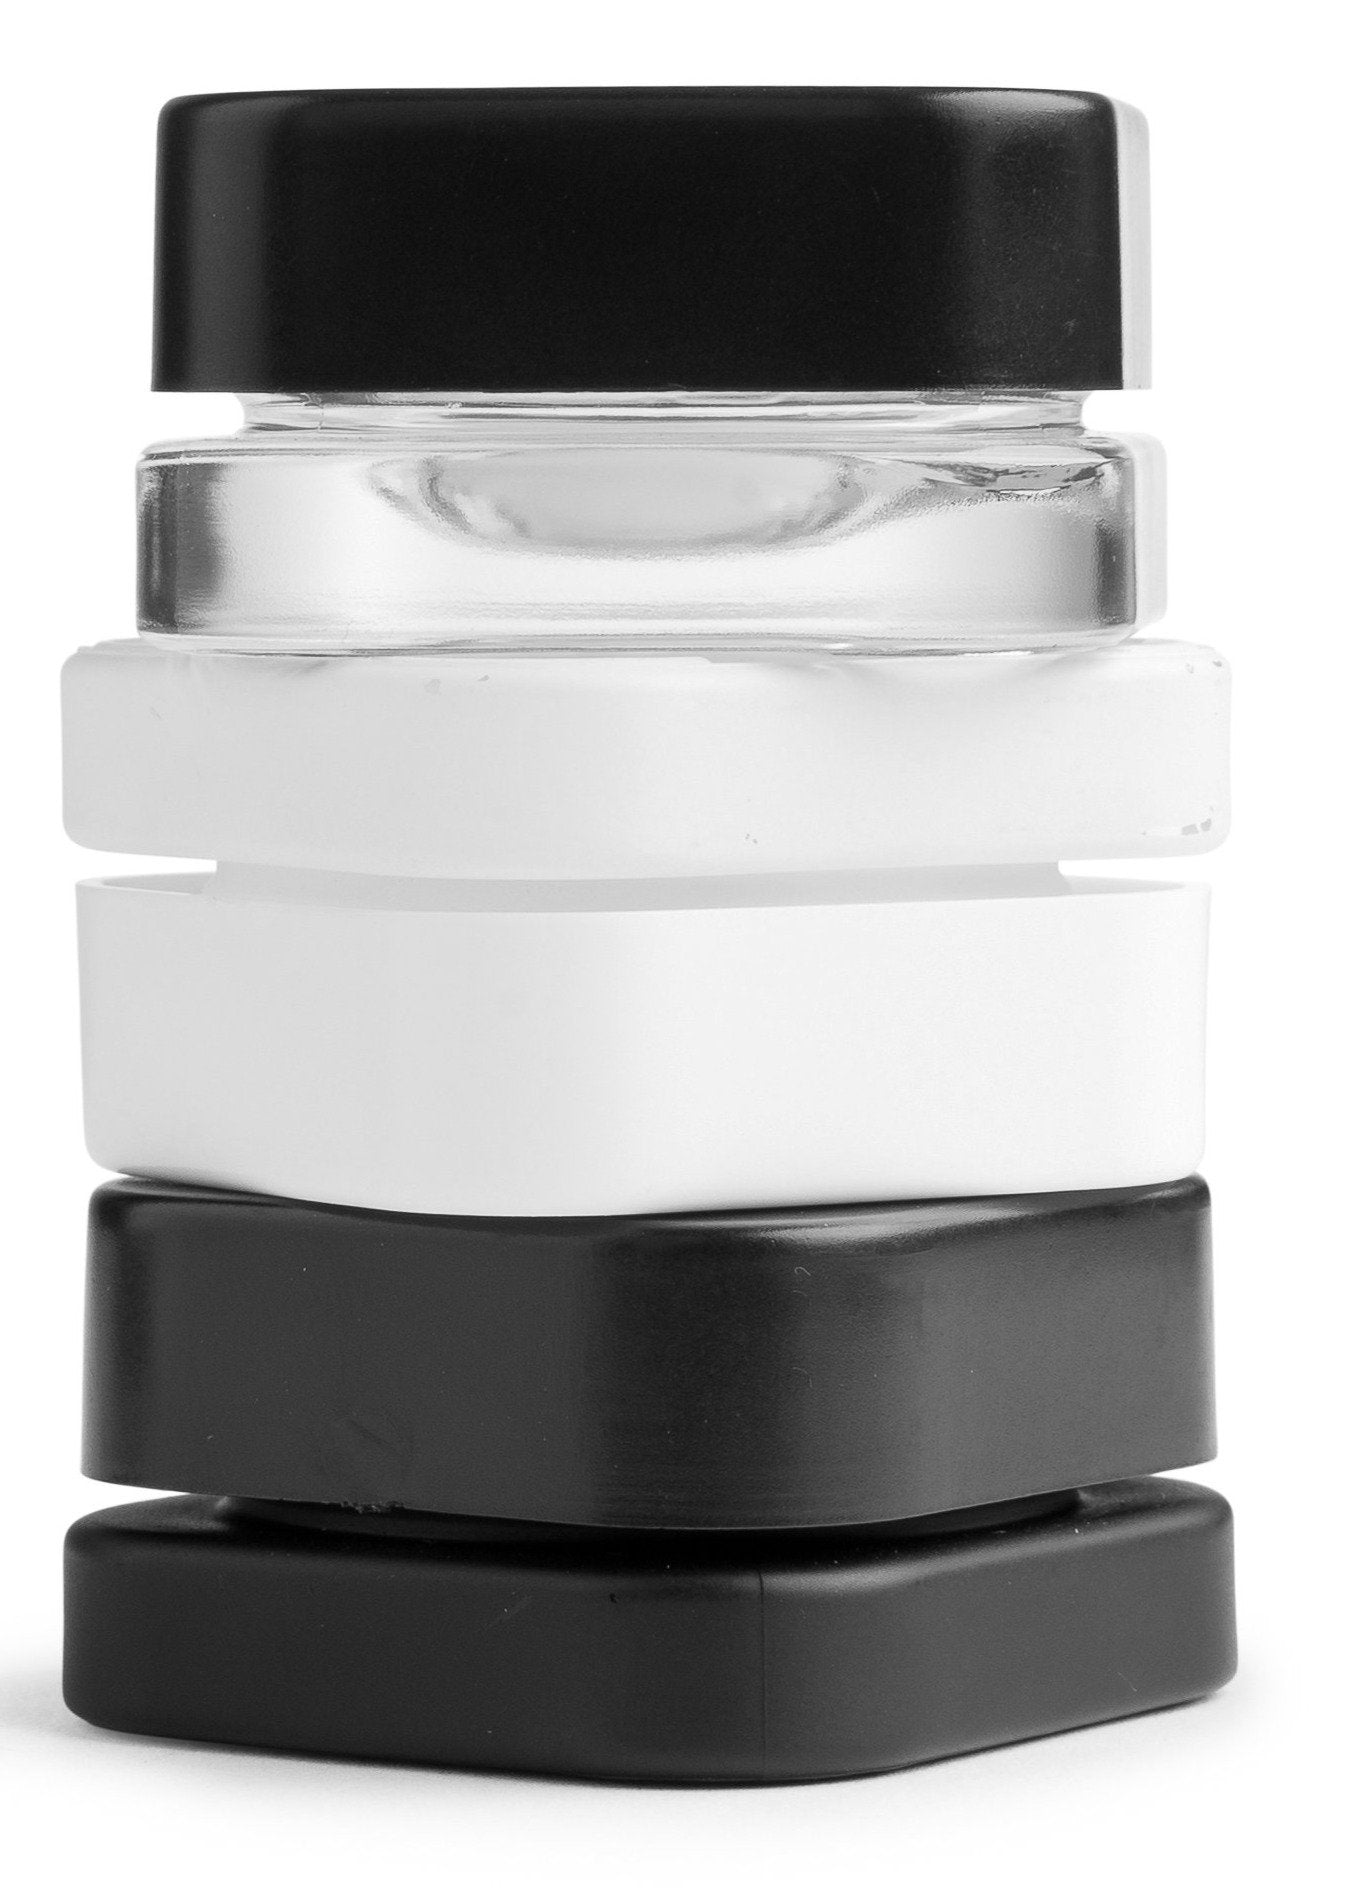 Qube 9mL Square Glass Concentrate Jar - Clear, Opaque Black, or Opaque White Child Resistant - Lake shore vibe